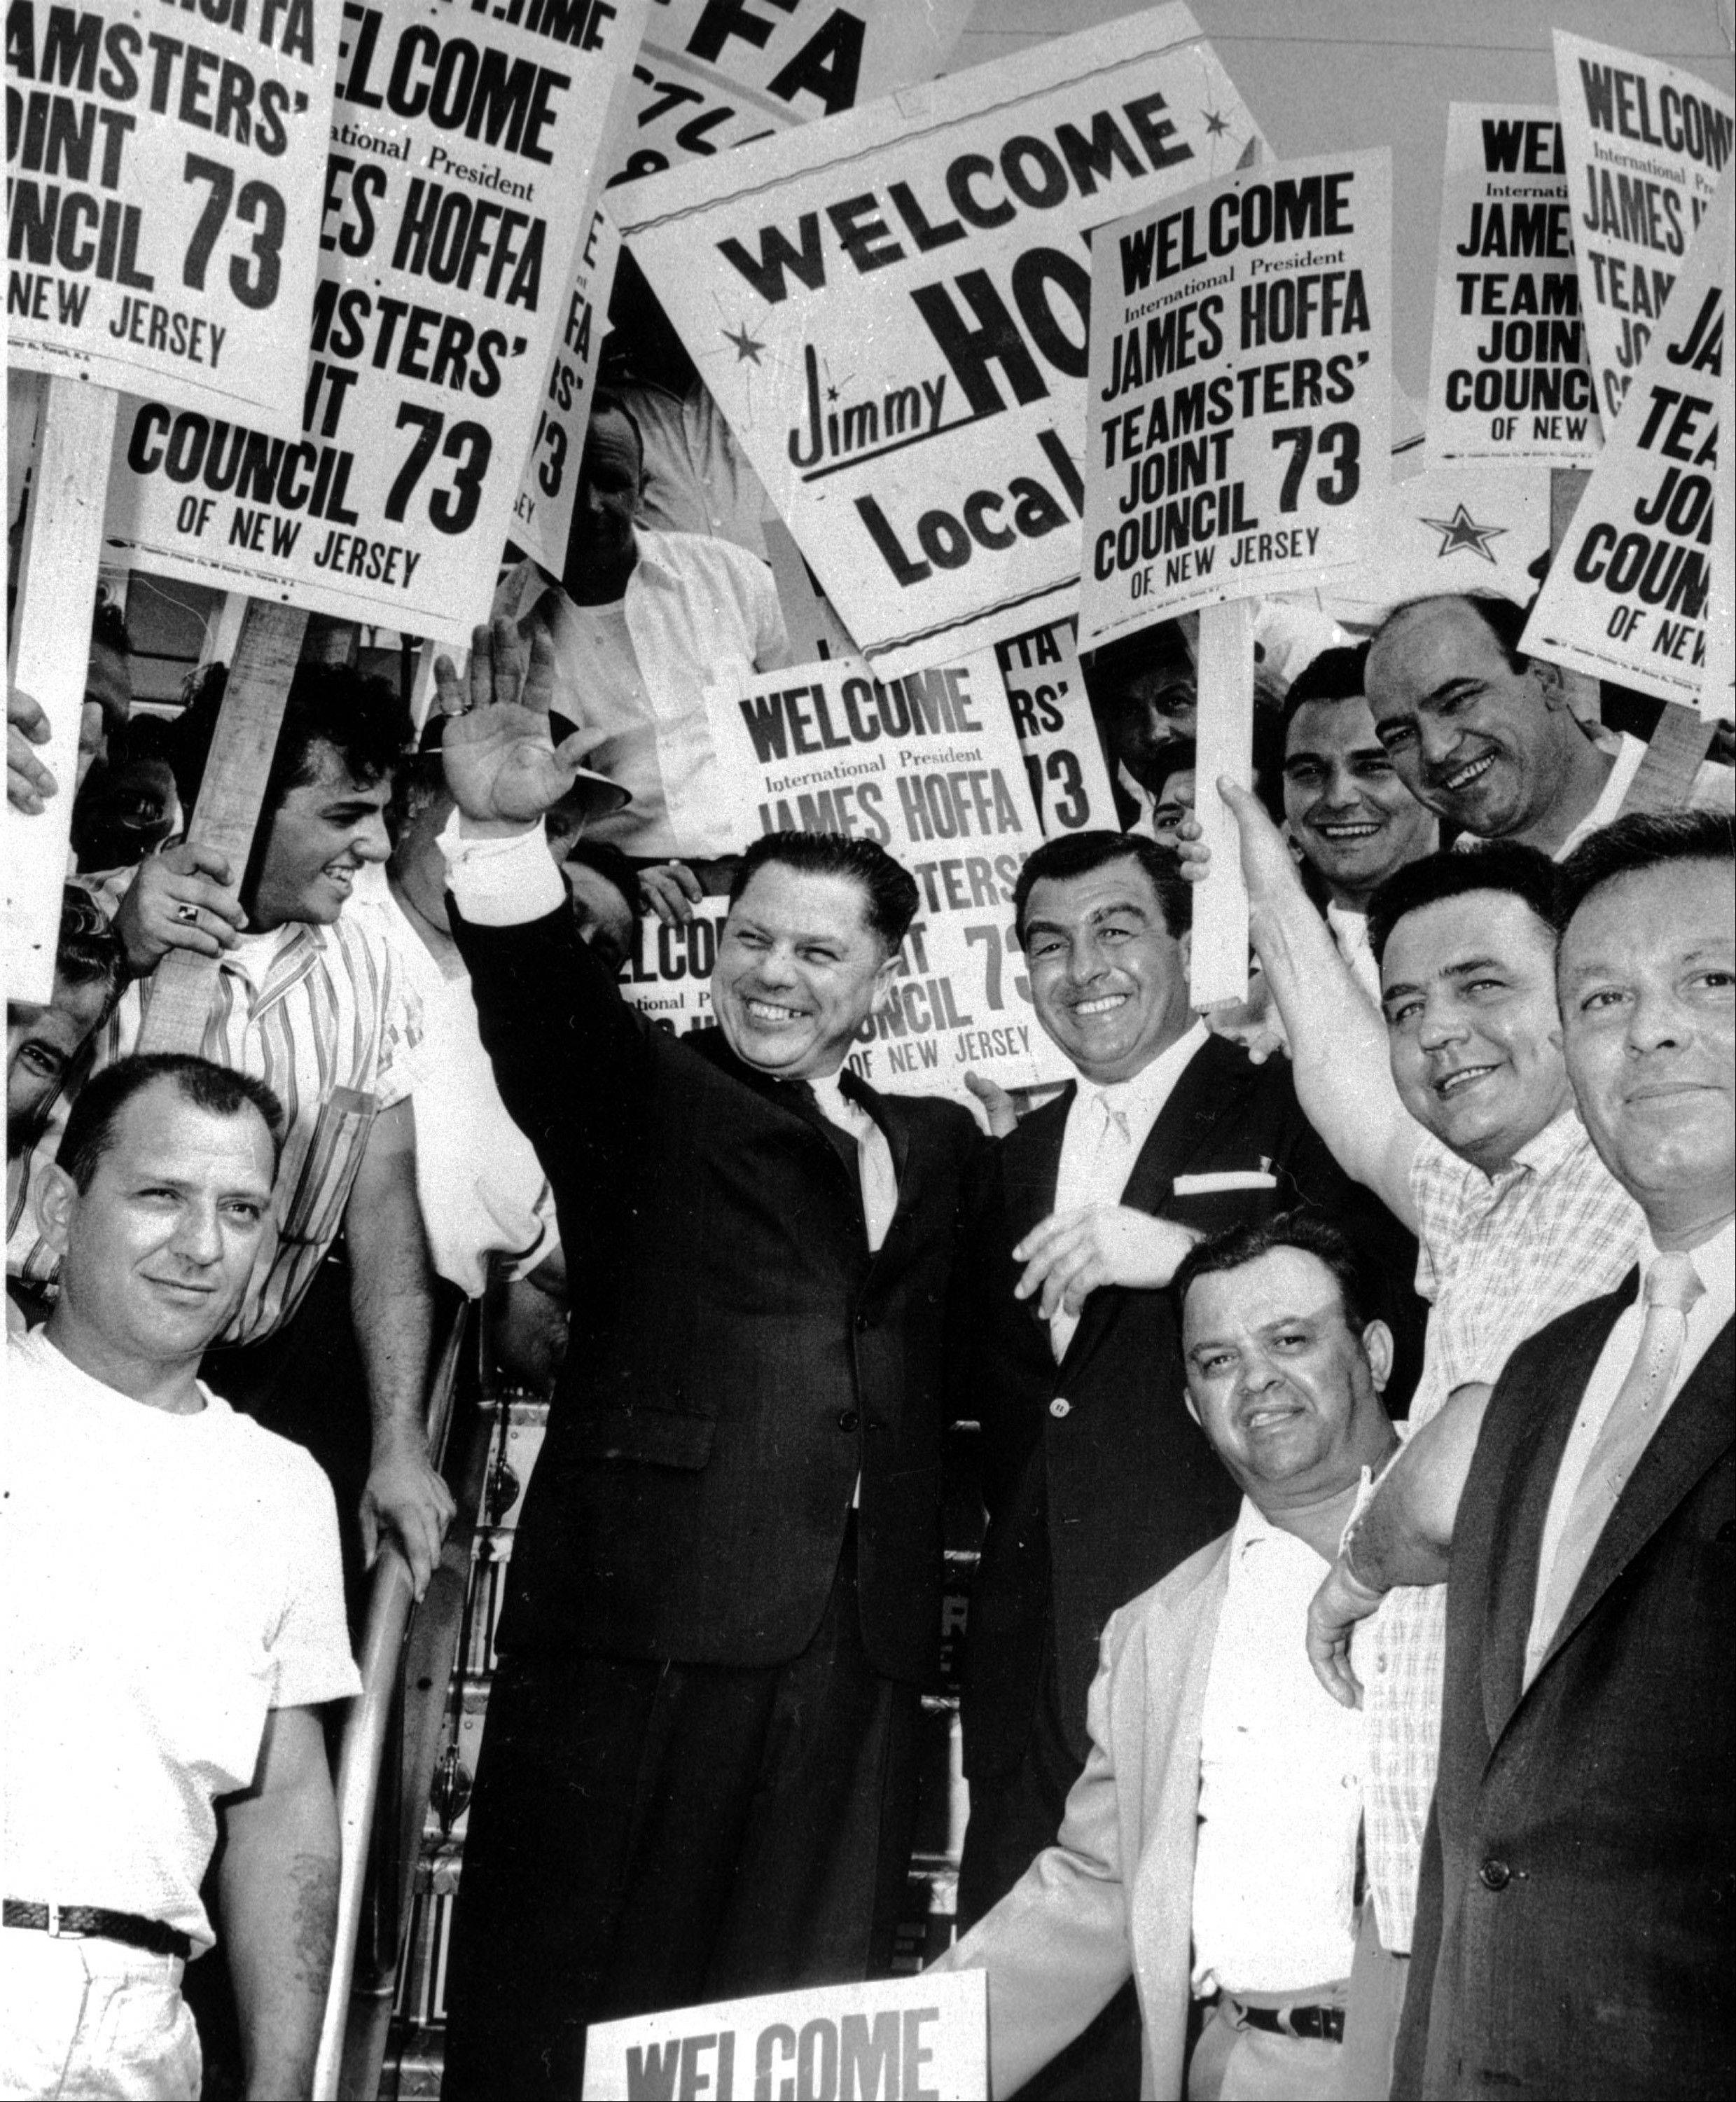 This undated photo shows Teamsters Union President James R. Hoffa, left, stands with Anthony Provenzano, right, and fellow union members during Hoffa's visit to New Jersey. A self-described mafia murderer who served prison time with Hoffa told a U.S. Senate committee that the teamsters boss was killed at Provenzano's orders.